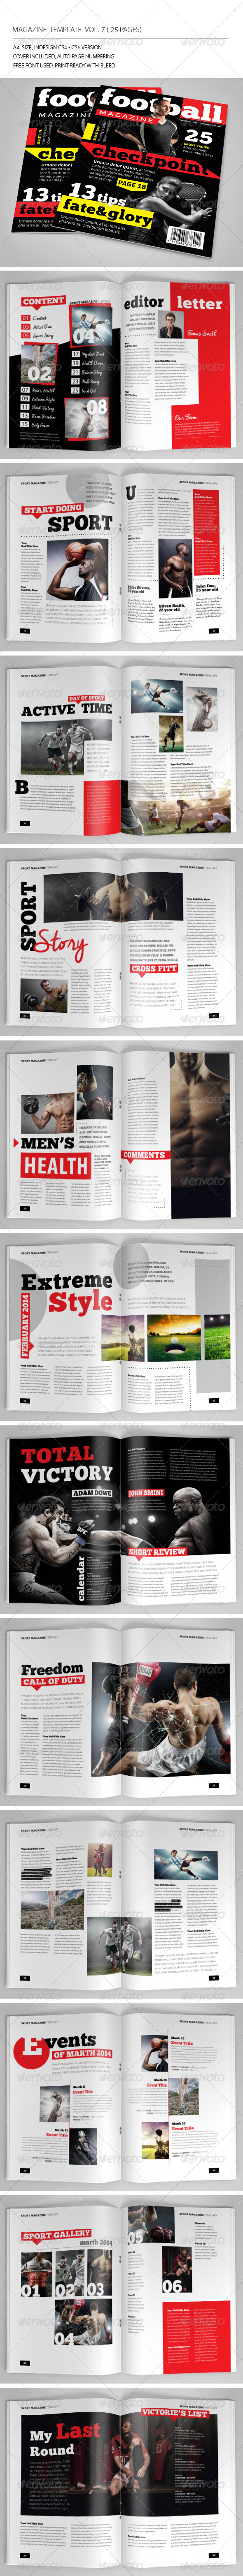 25 Pages Sport Magazine Vol7 - Magazines Print Templates